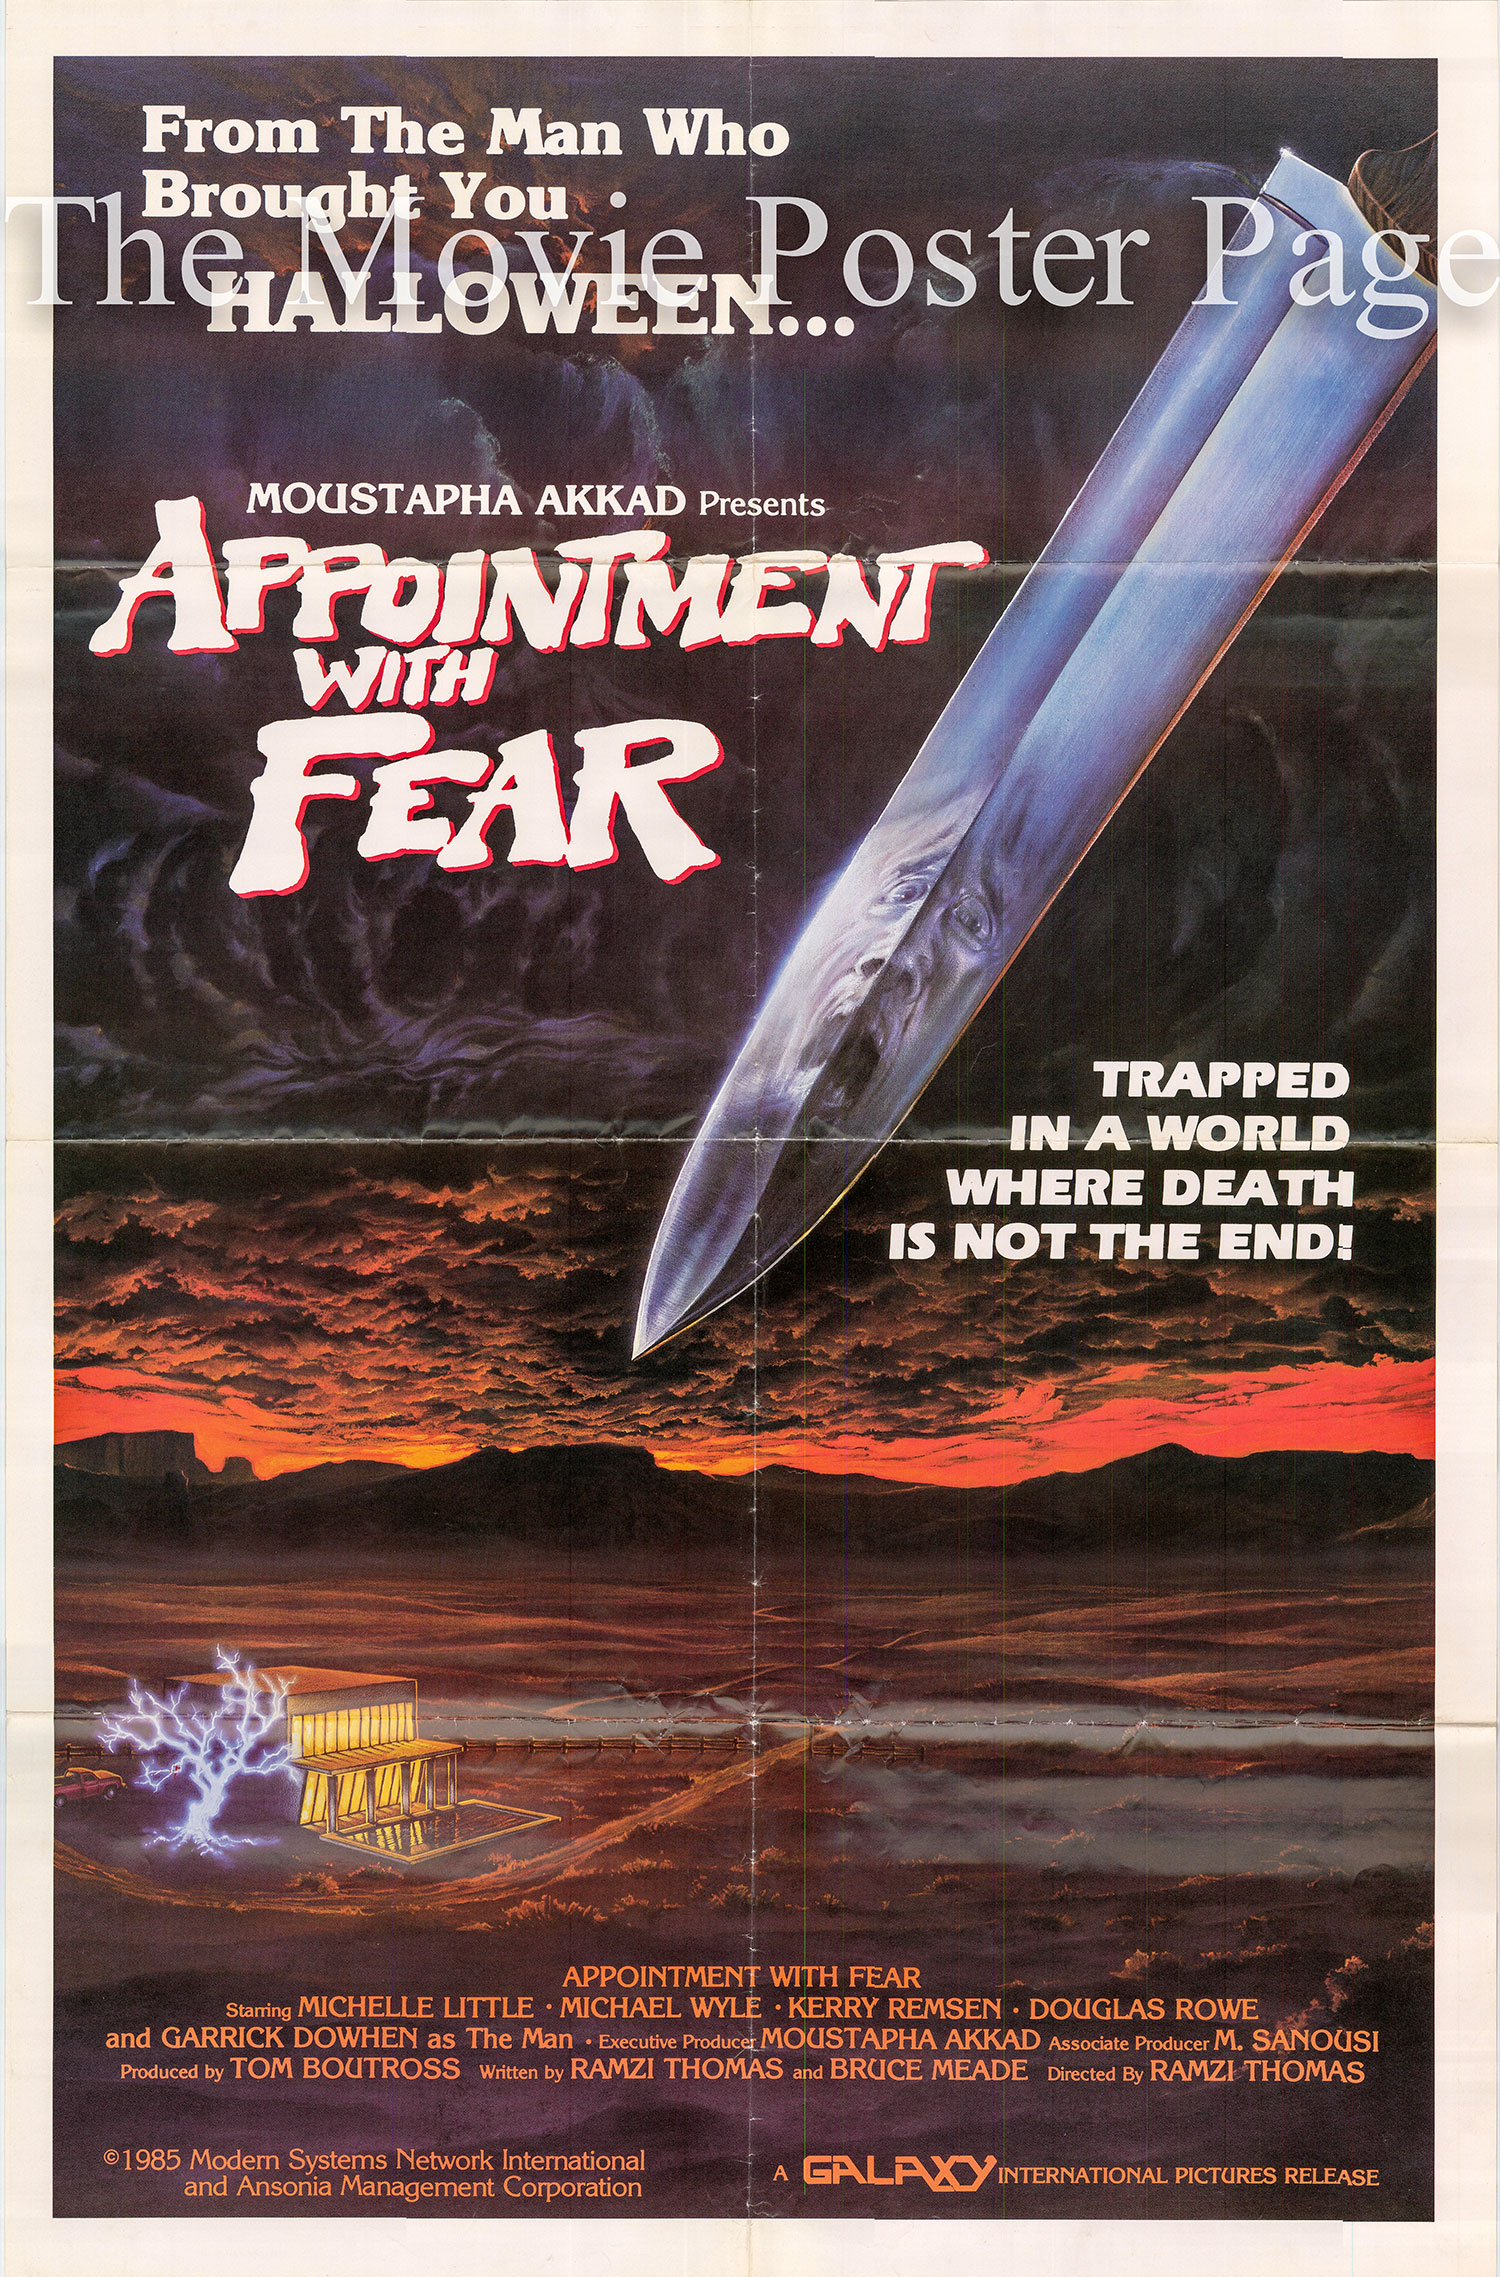 Pictured ia a US one-sheet promotional poster for the 1985 Ramsey Thomas film Appointment with fear starring Michele Little.